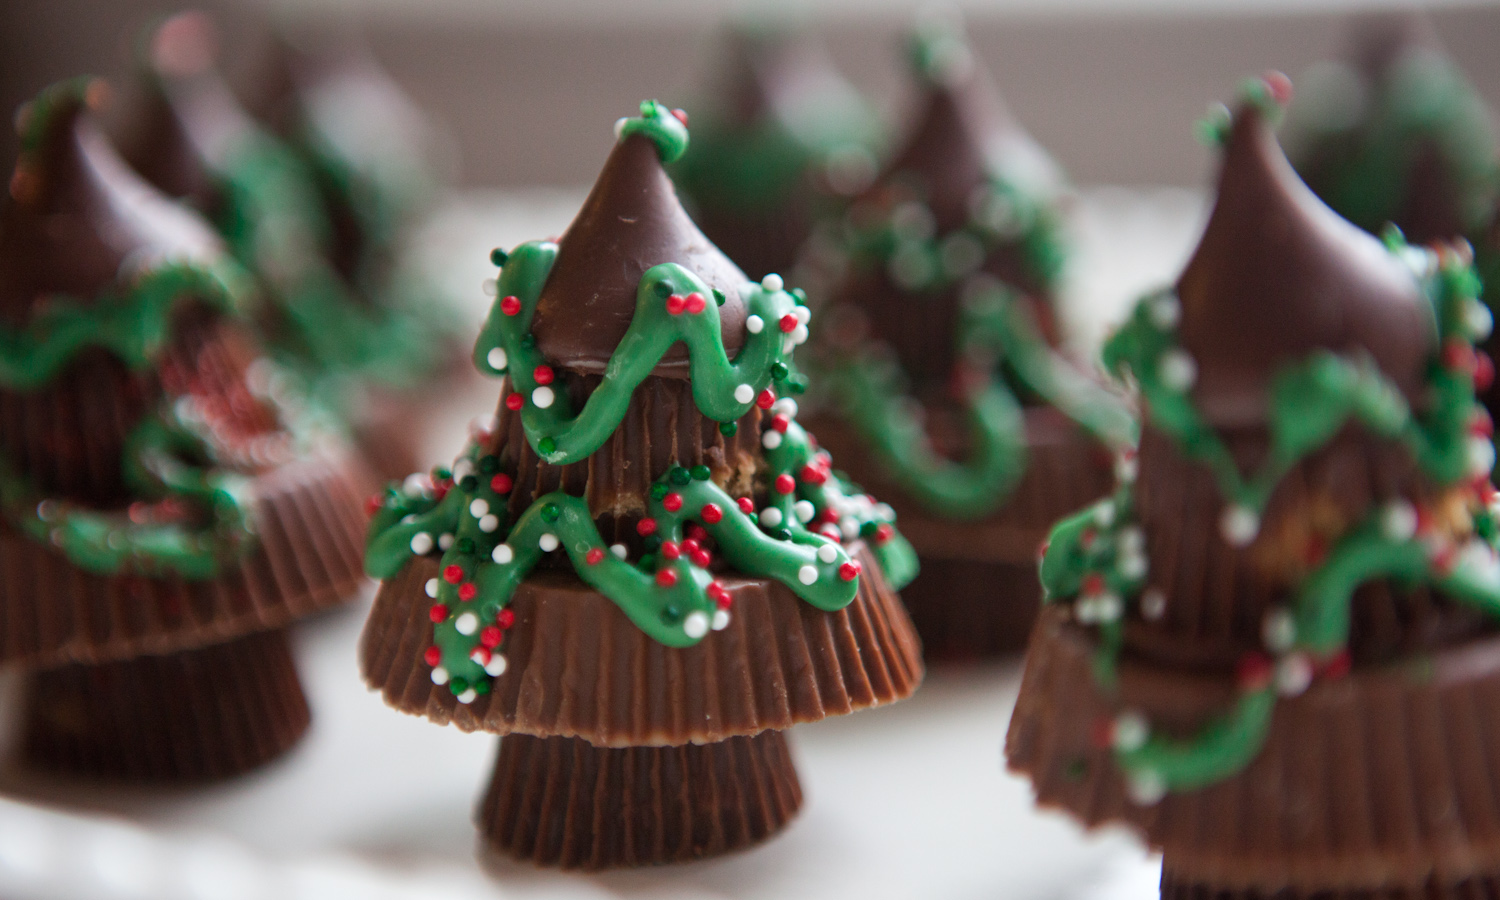 Reese's Tries -- And Fails -- To Make Tree-shaped Peanut